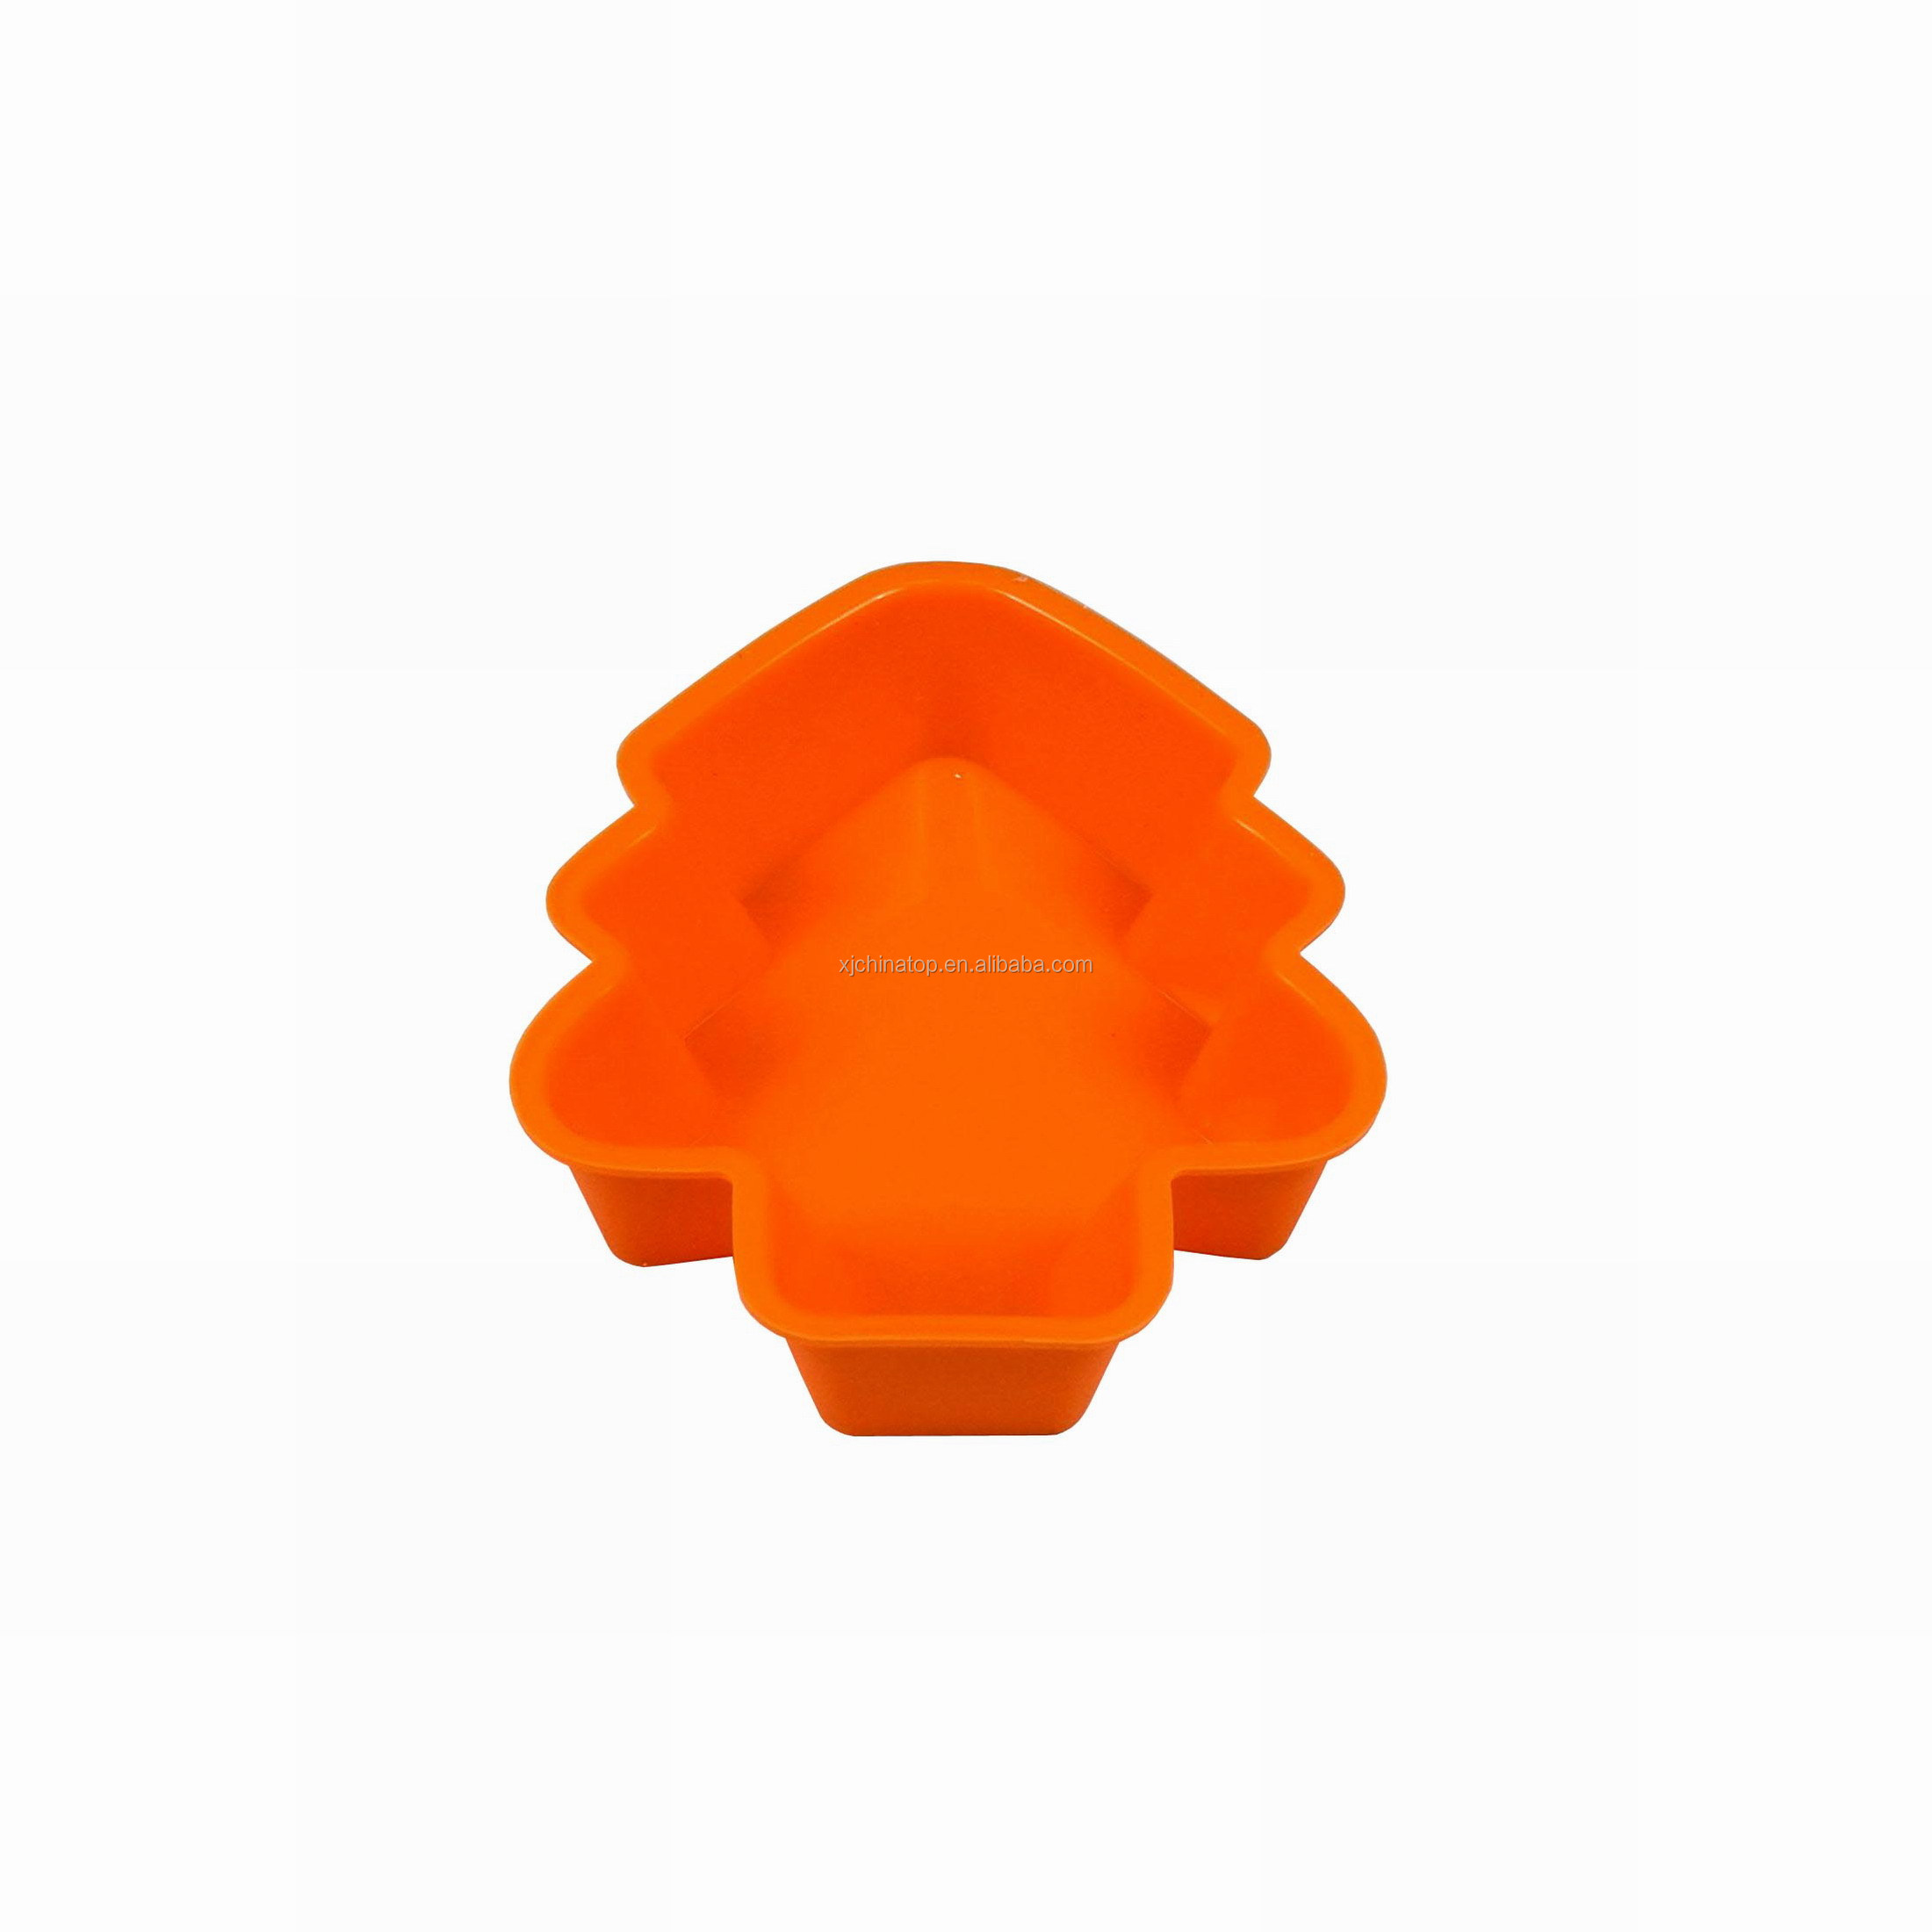 Jk16238F Christmas Tree Cake Mold Bakeware Silicone